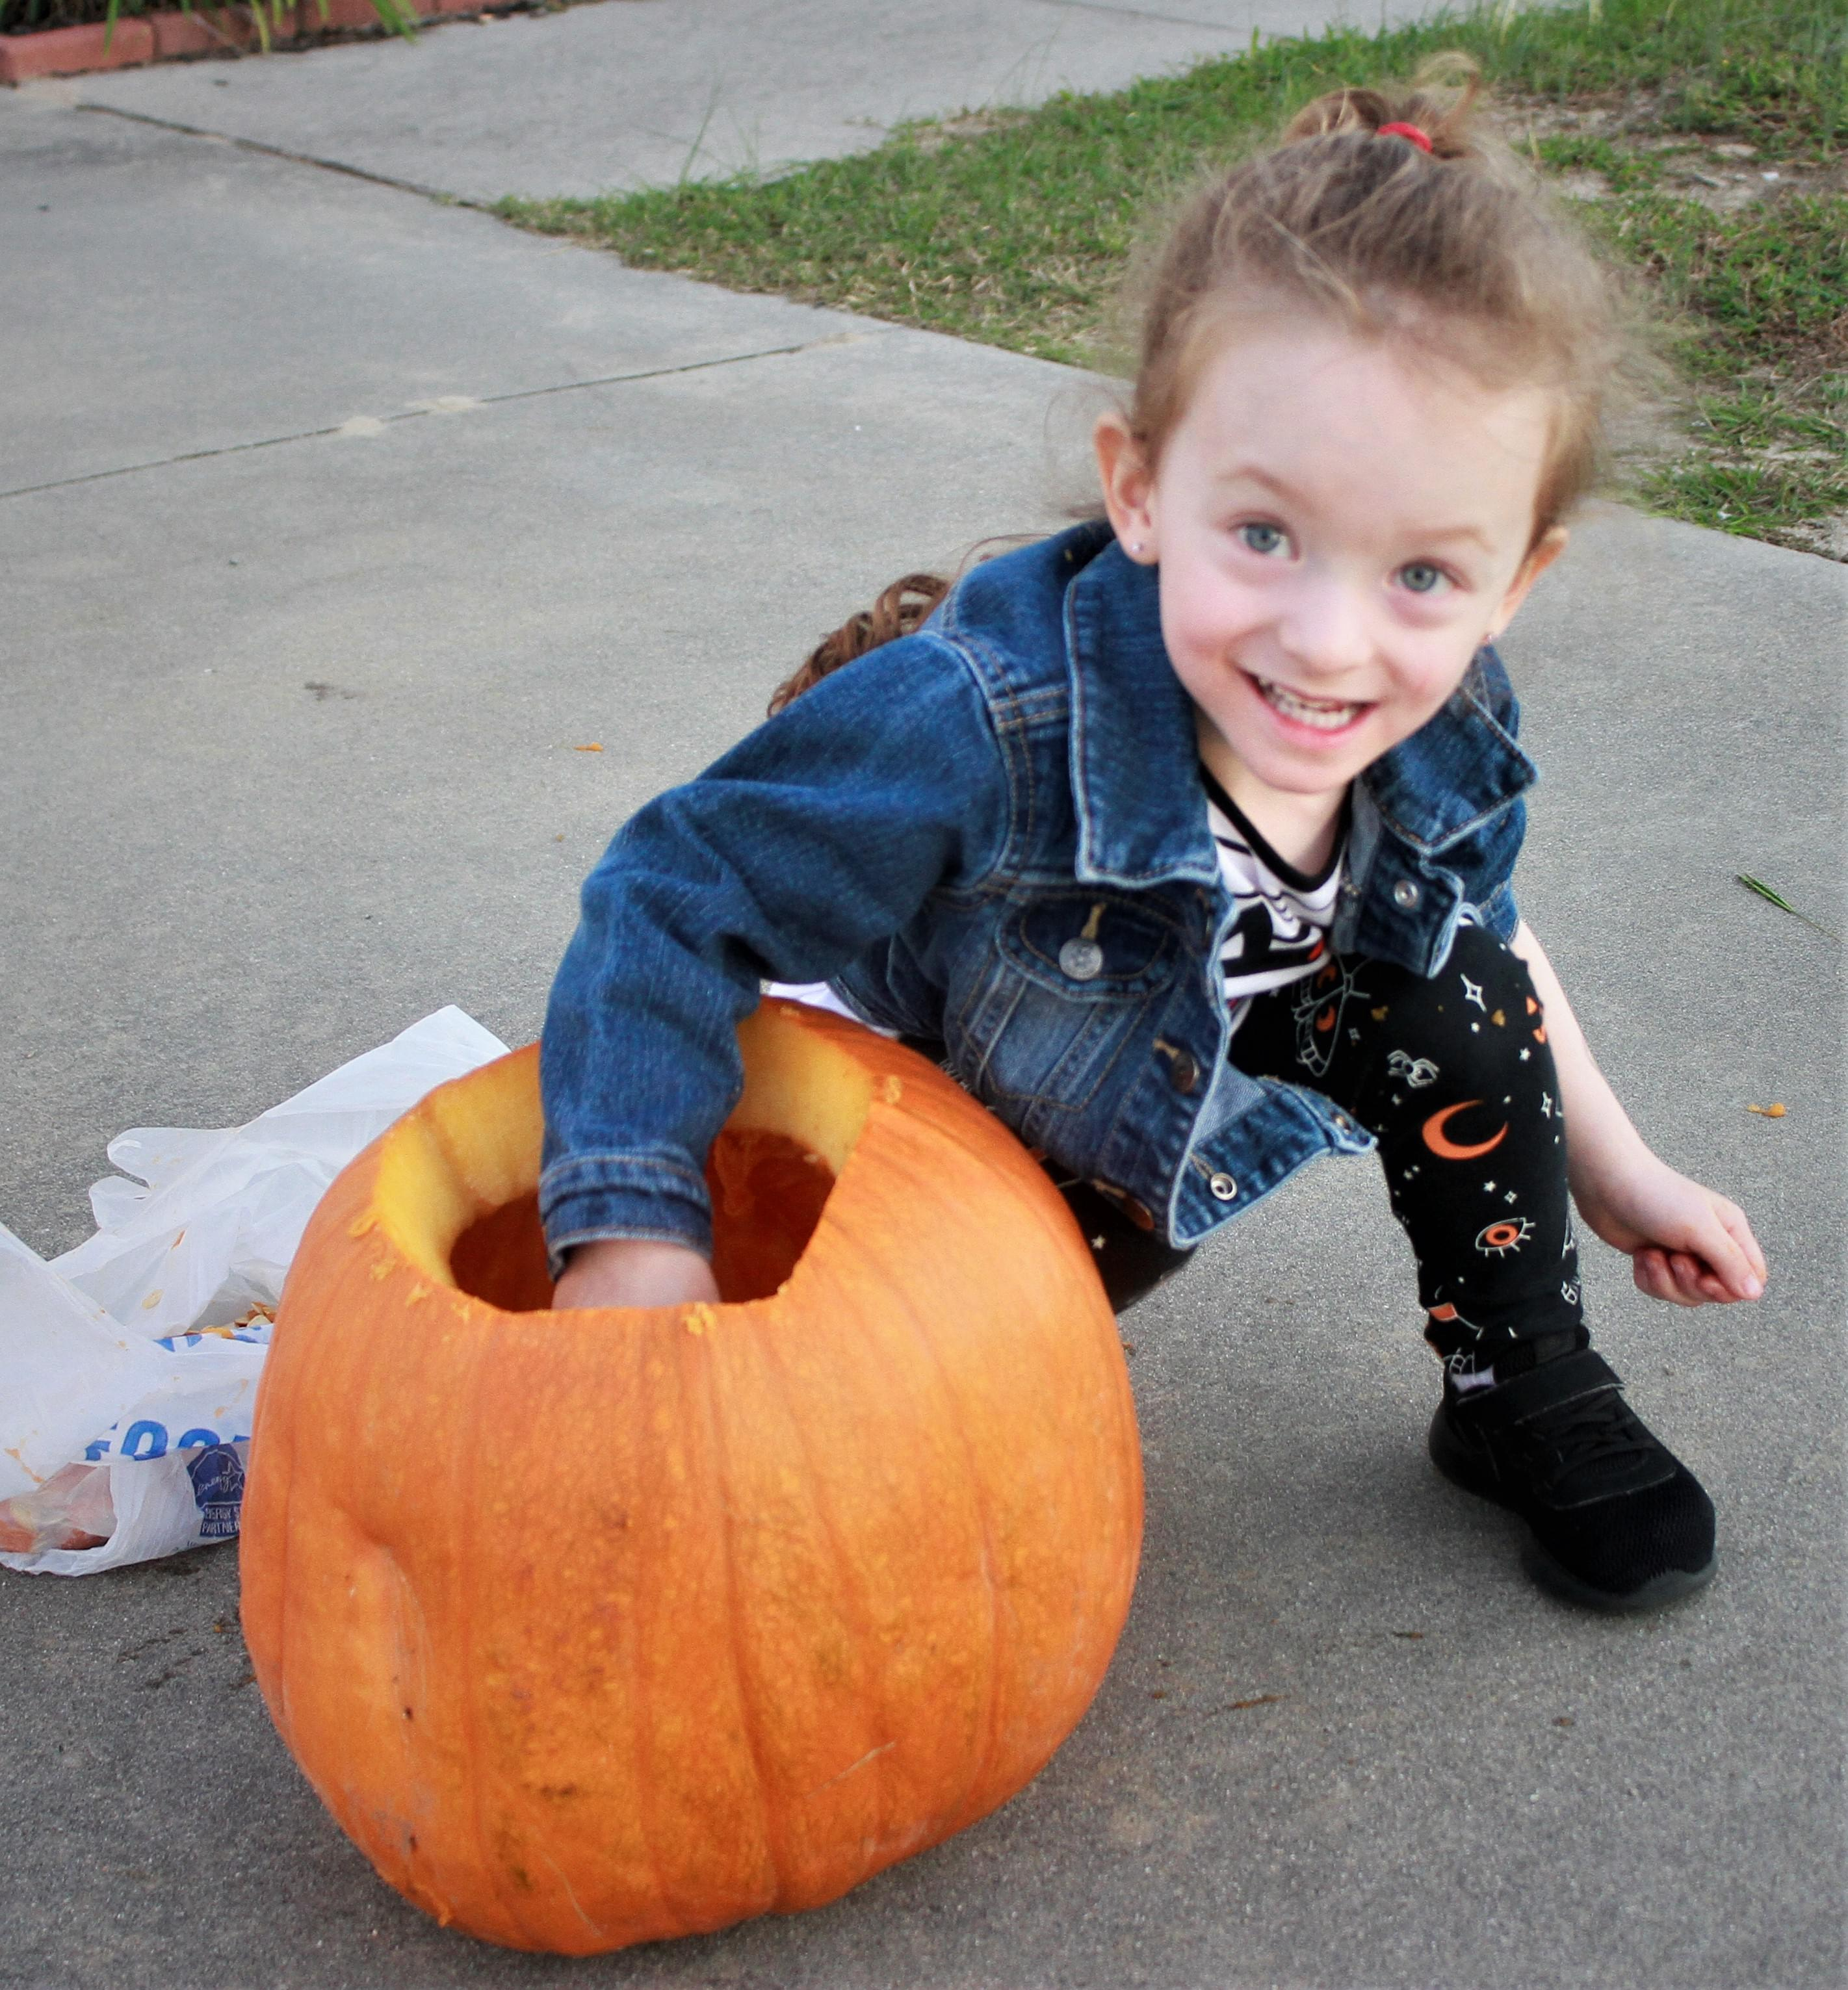 Family, Friends Join To Carve Jack-O'-Lanterns (PHOTO GALLERY)